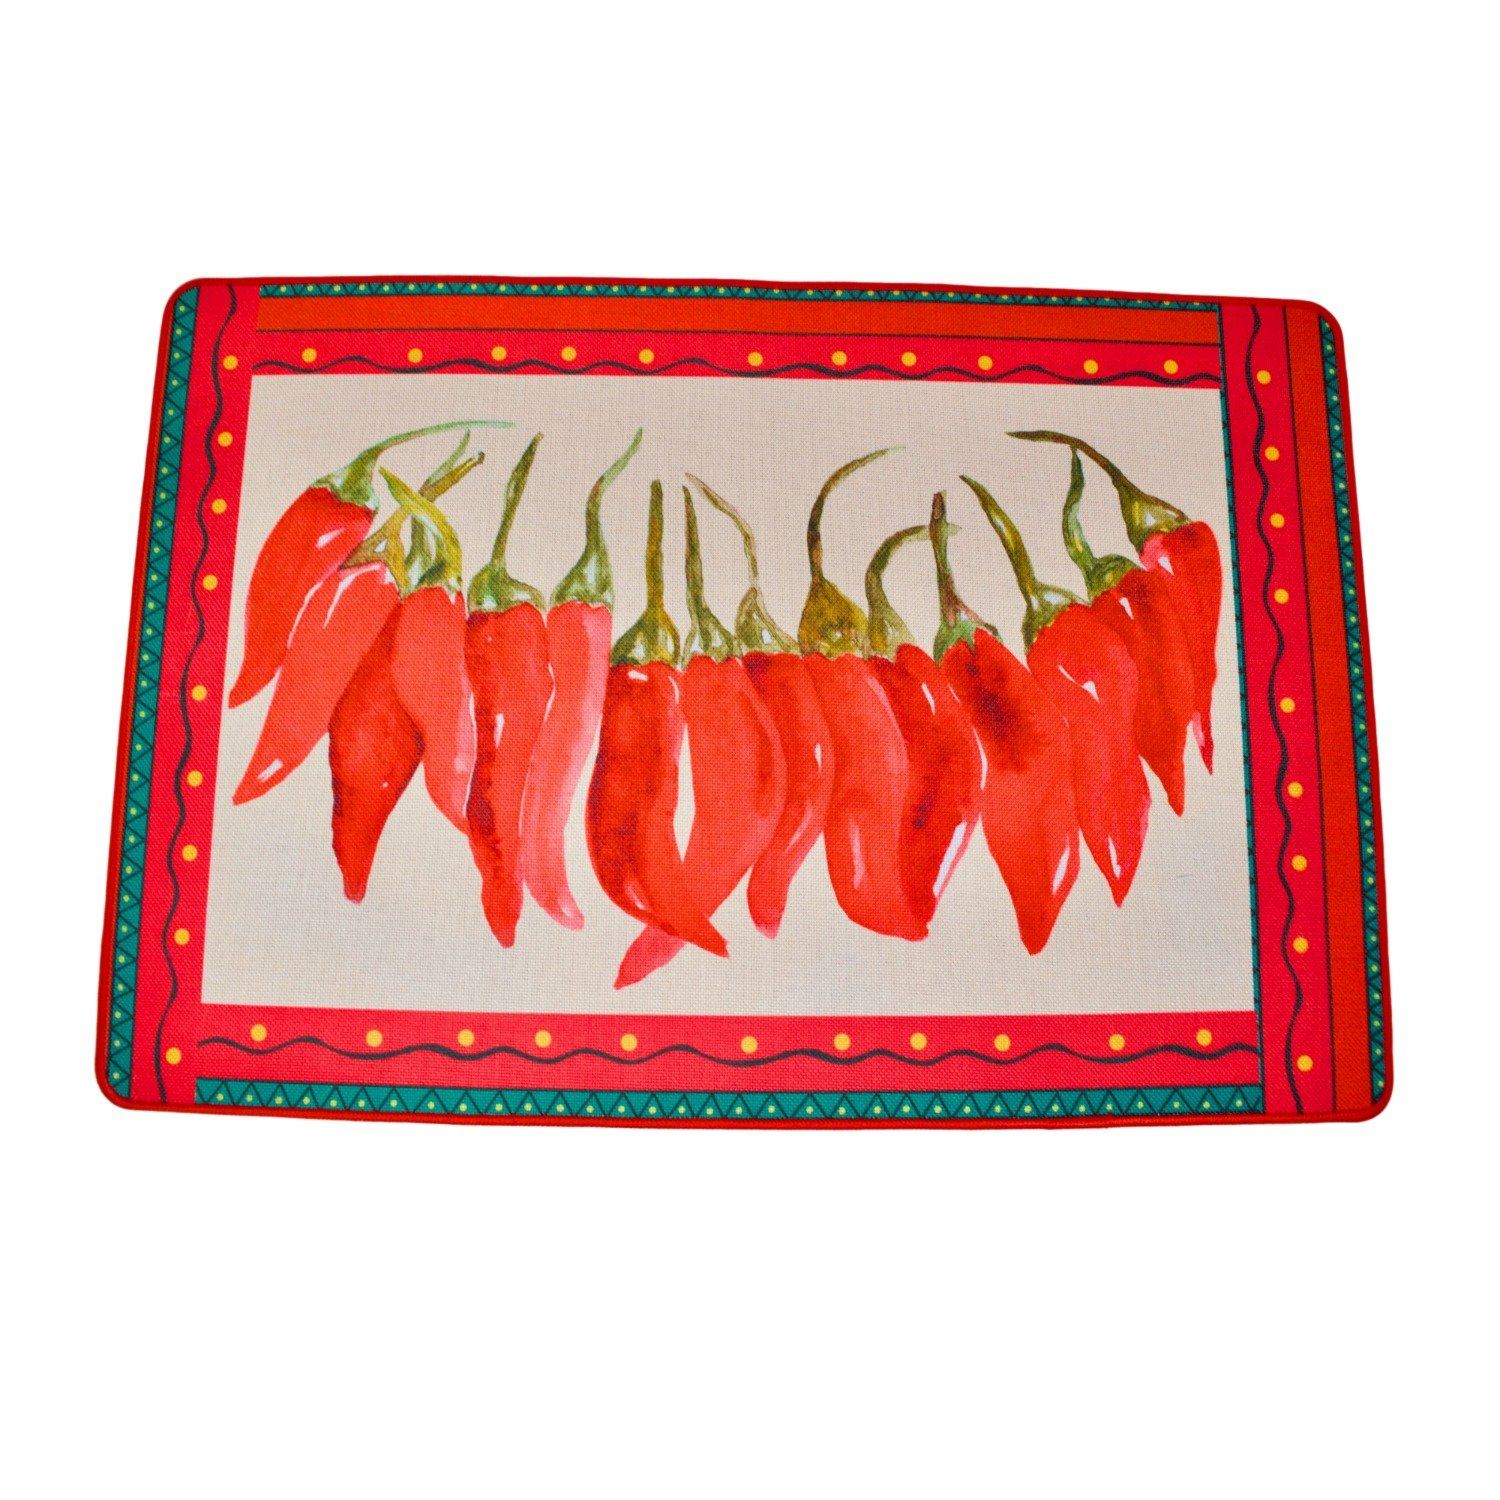 Farm House Red Hot Chili Peppers Accent Rug Fiesta String Chili Peppers 23 inches x 15.75 inches